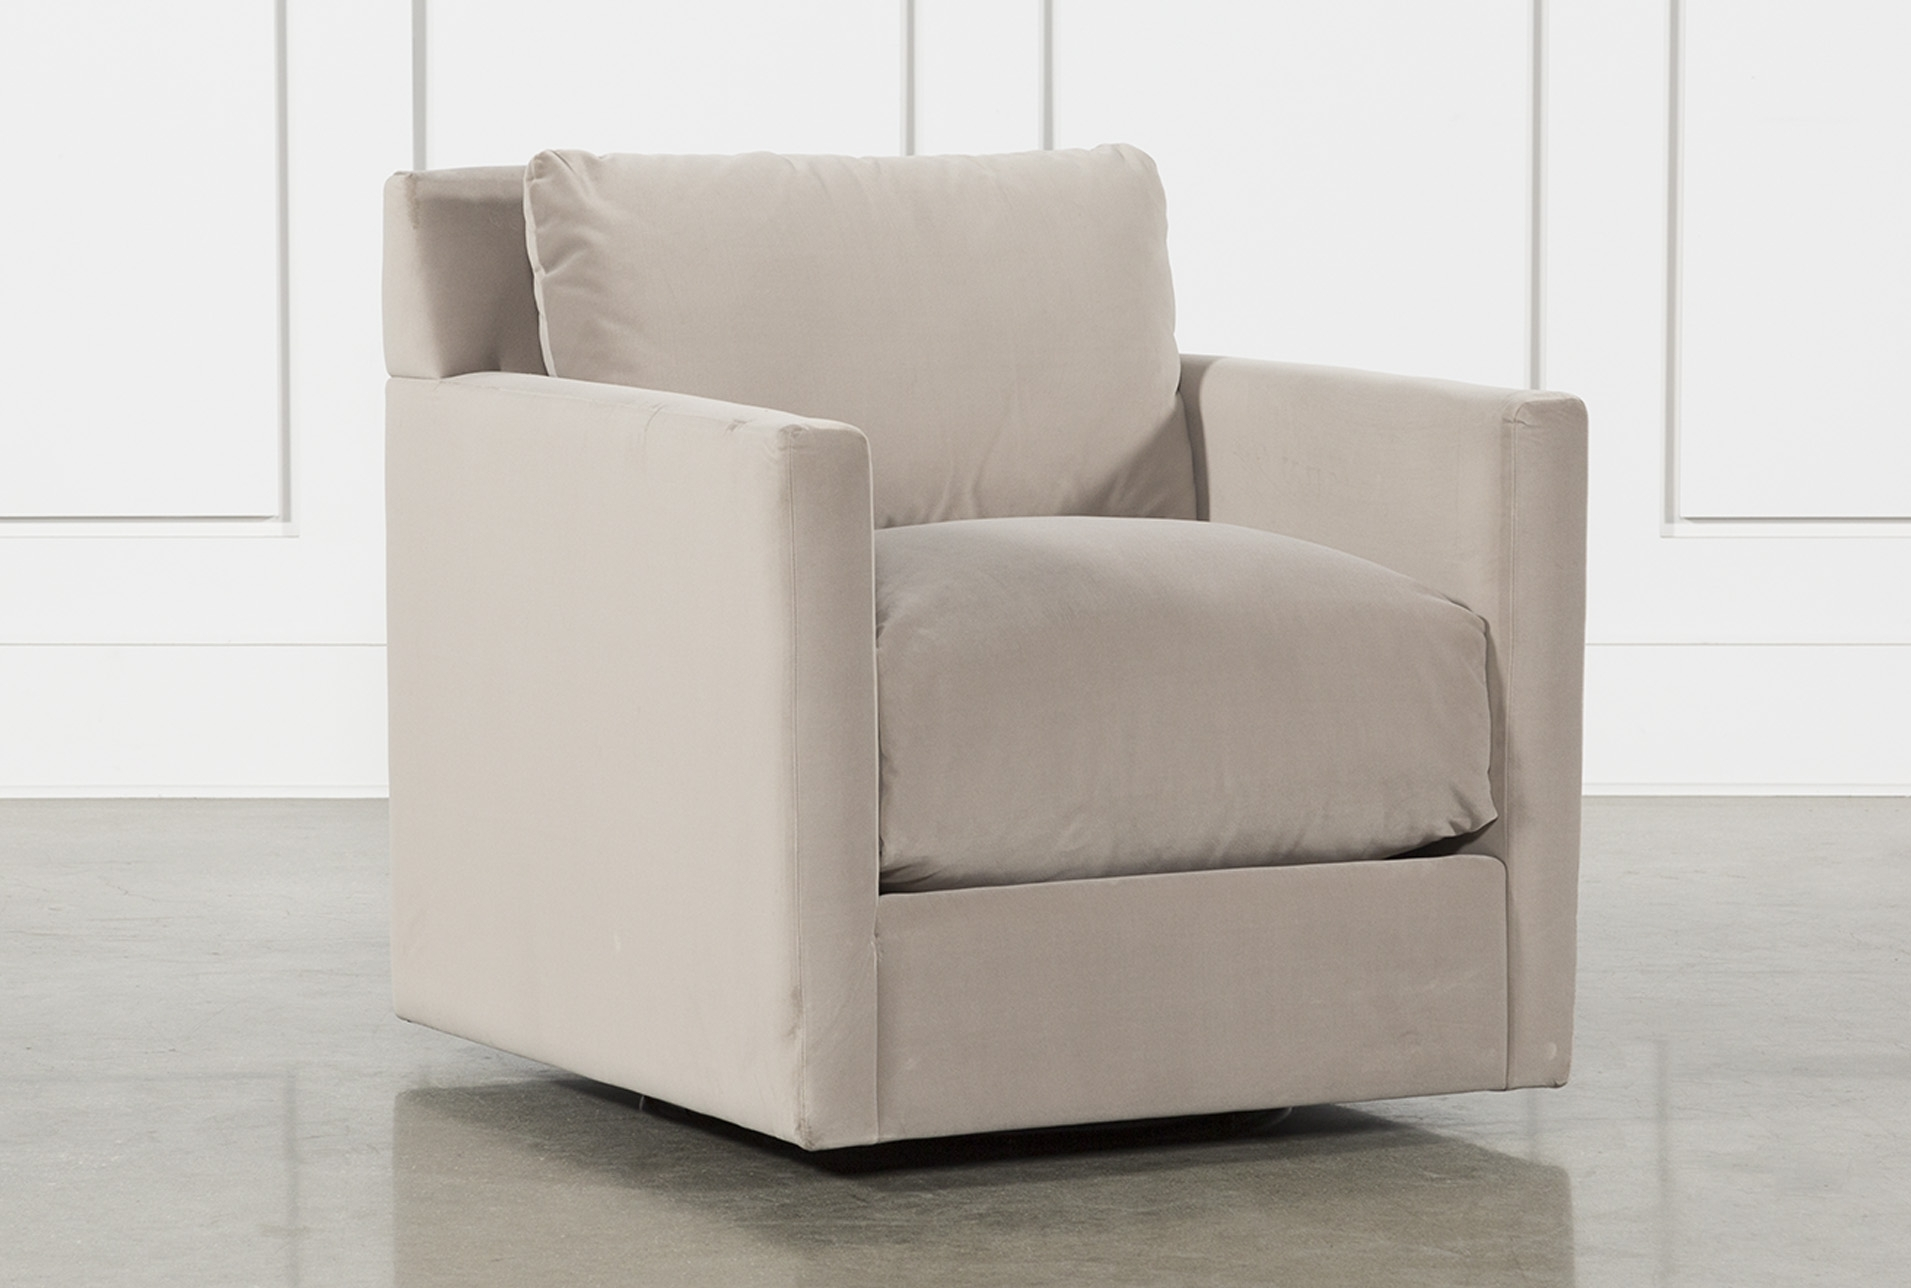 List Of Pinterest Nate Berkus And Images & Nate Berkus And Pictures Intended For Soane 3 Piece Sectionals By Nate Berkus And Jeremiah Brent (View 2 of 30)